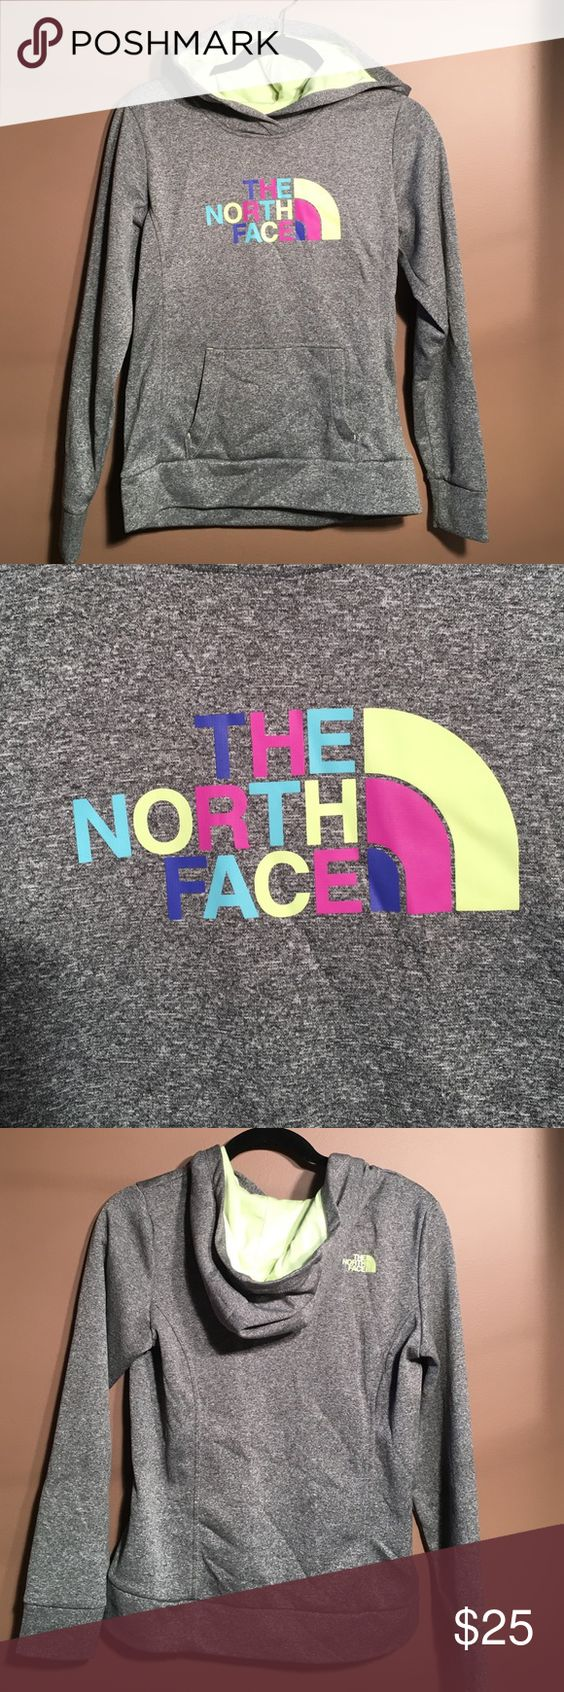 "North Face Sweatshirt Hoodie North Face heather grey hoodie w neon green interior hood. Multi color half dome logo on front, North Face name on back shoulder in neon green. Great condition and super cute and stylish. 100% polyester. Machine wash cold, tumble dry low. NO thumb holes, just a traditional cuff. Approx 18"" from pit to pit when laid flat. Approx 24"" from top of shoulder to bottom hem. Approx 24"" sleeve length from top of shoulder to cuff/wrist. Shown with size 4 American Eagle…"